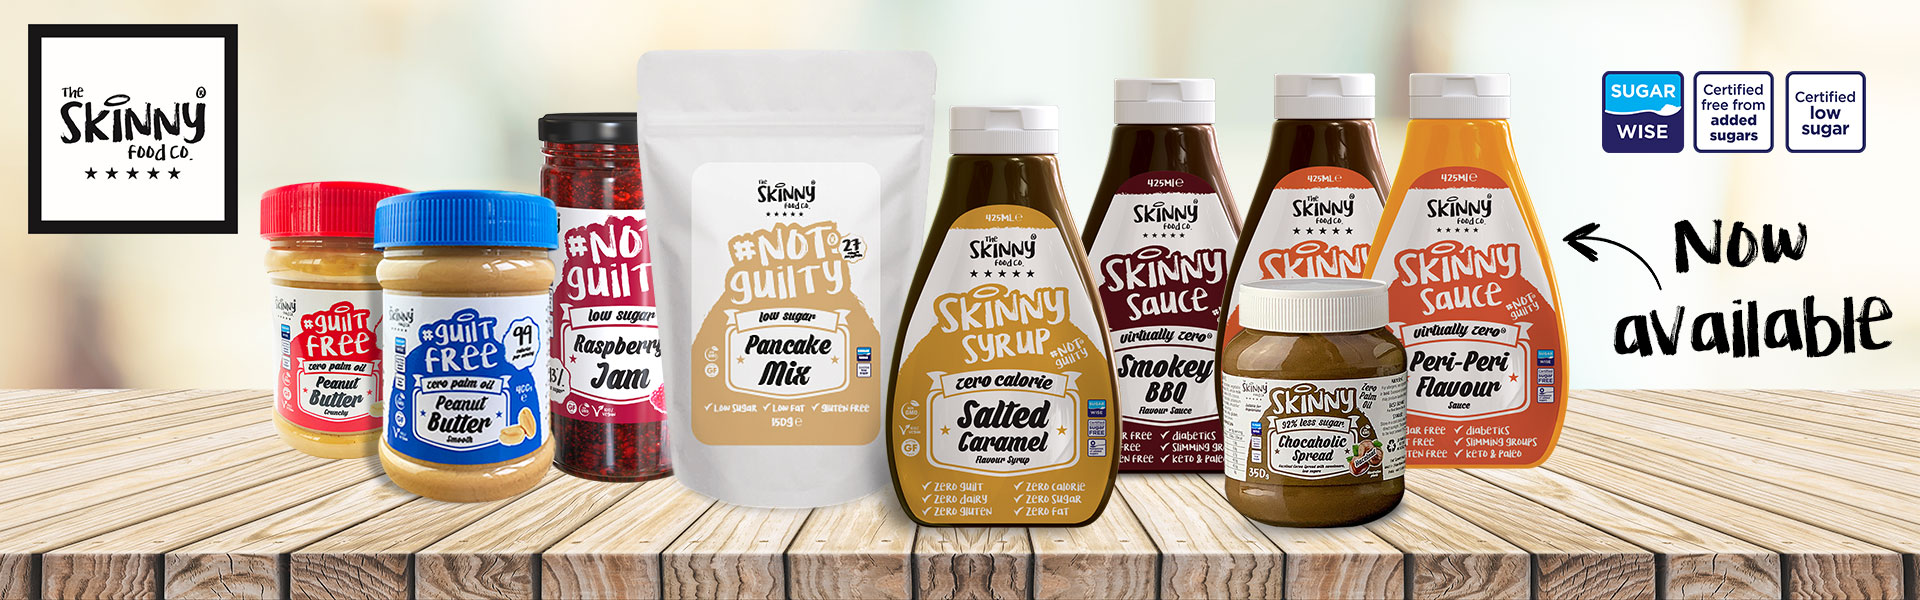 The Skinny Food All Products